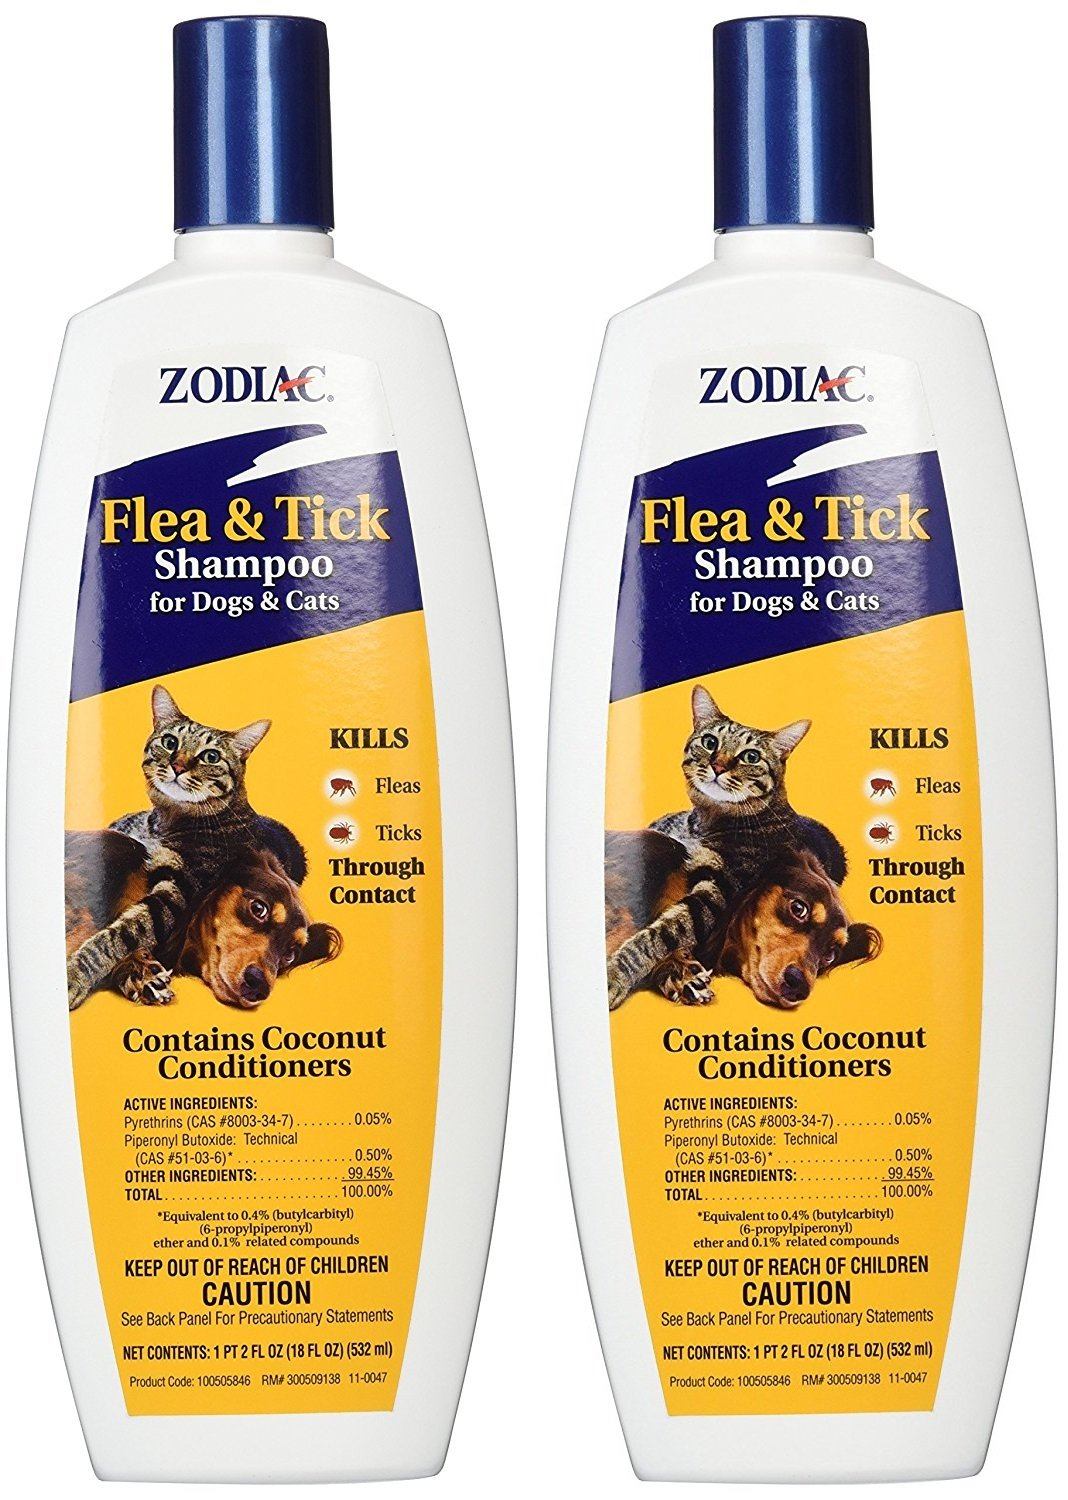 Zodiac Flea and Tick Shampoo for Dogs and Cats (2 Pack - 18 oz.) by Zodiac